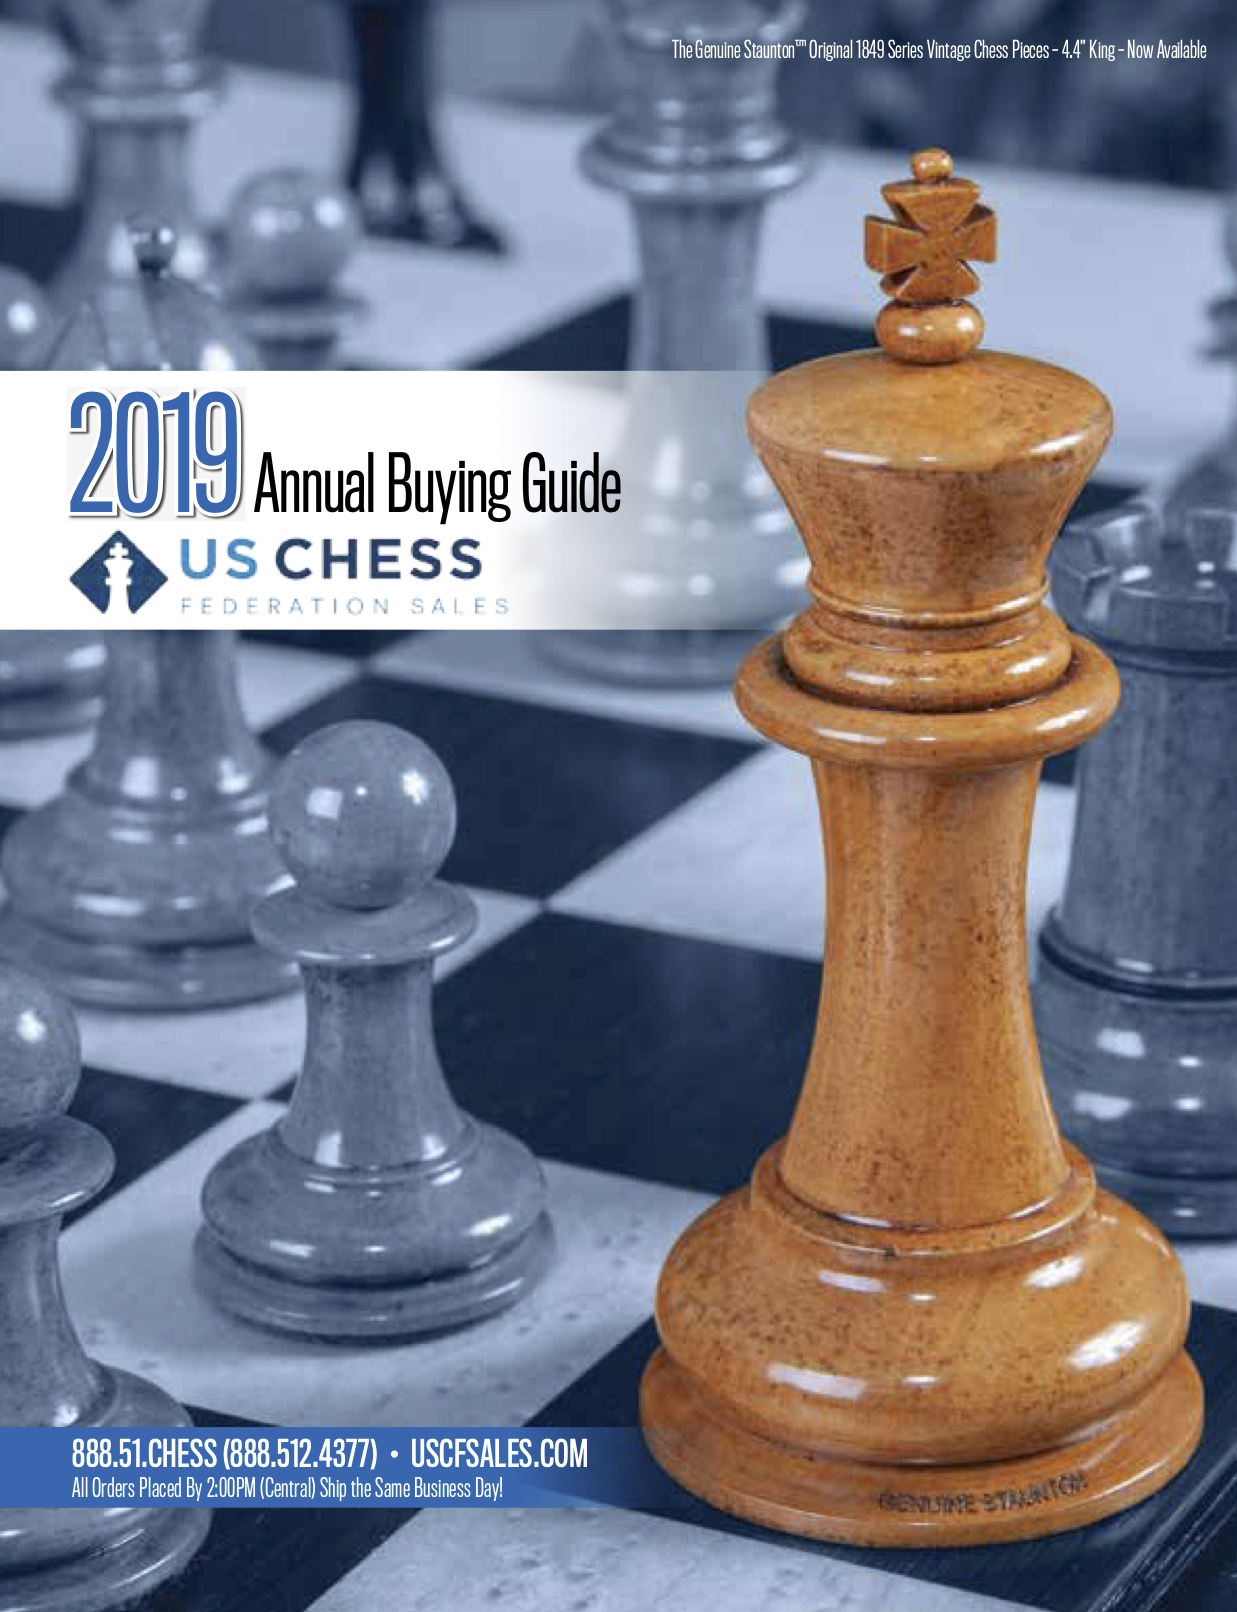 2019 Annual Buying Guide